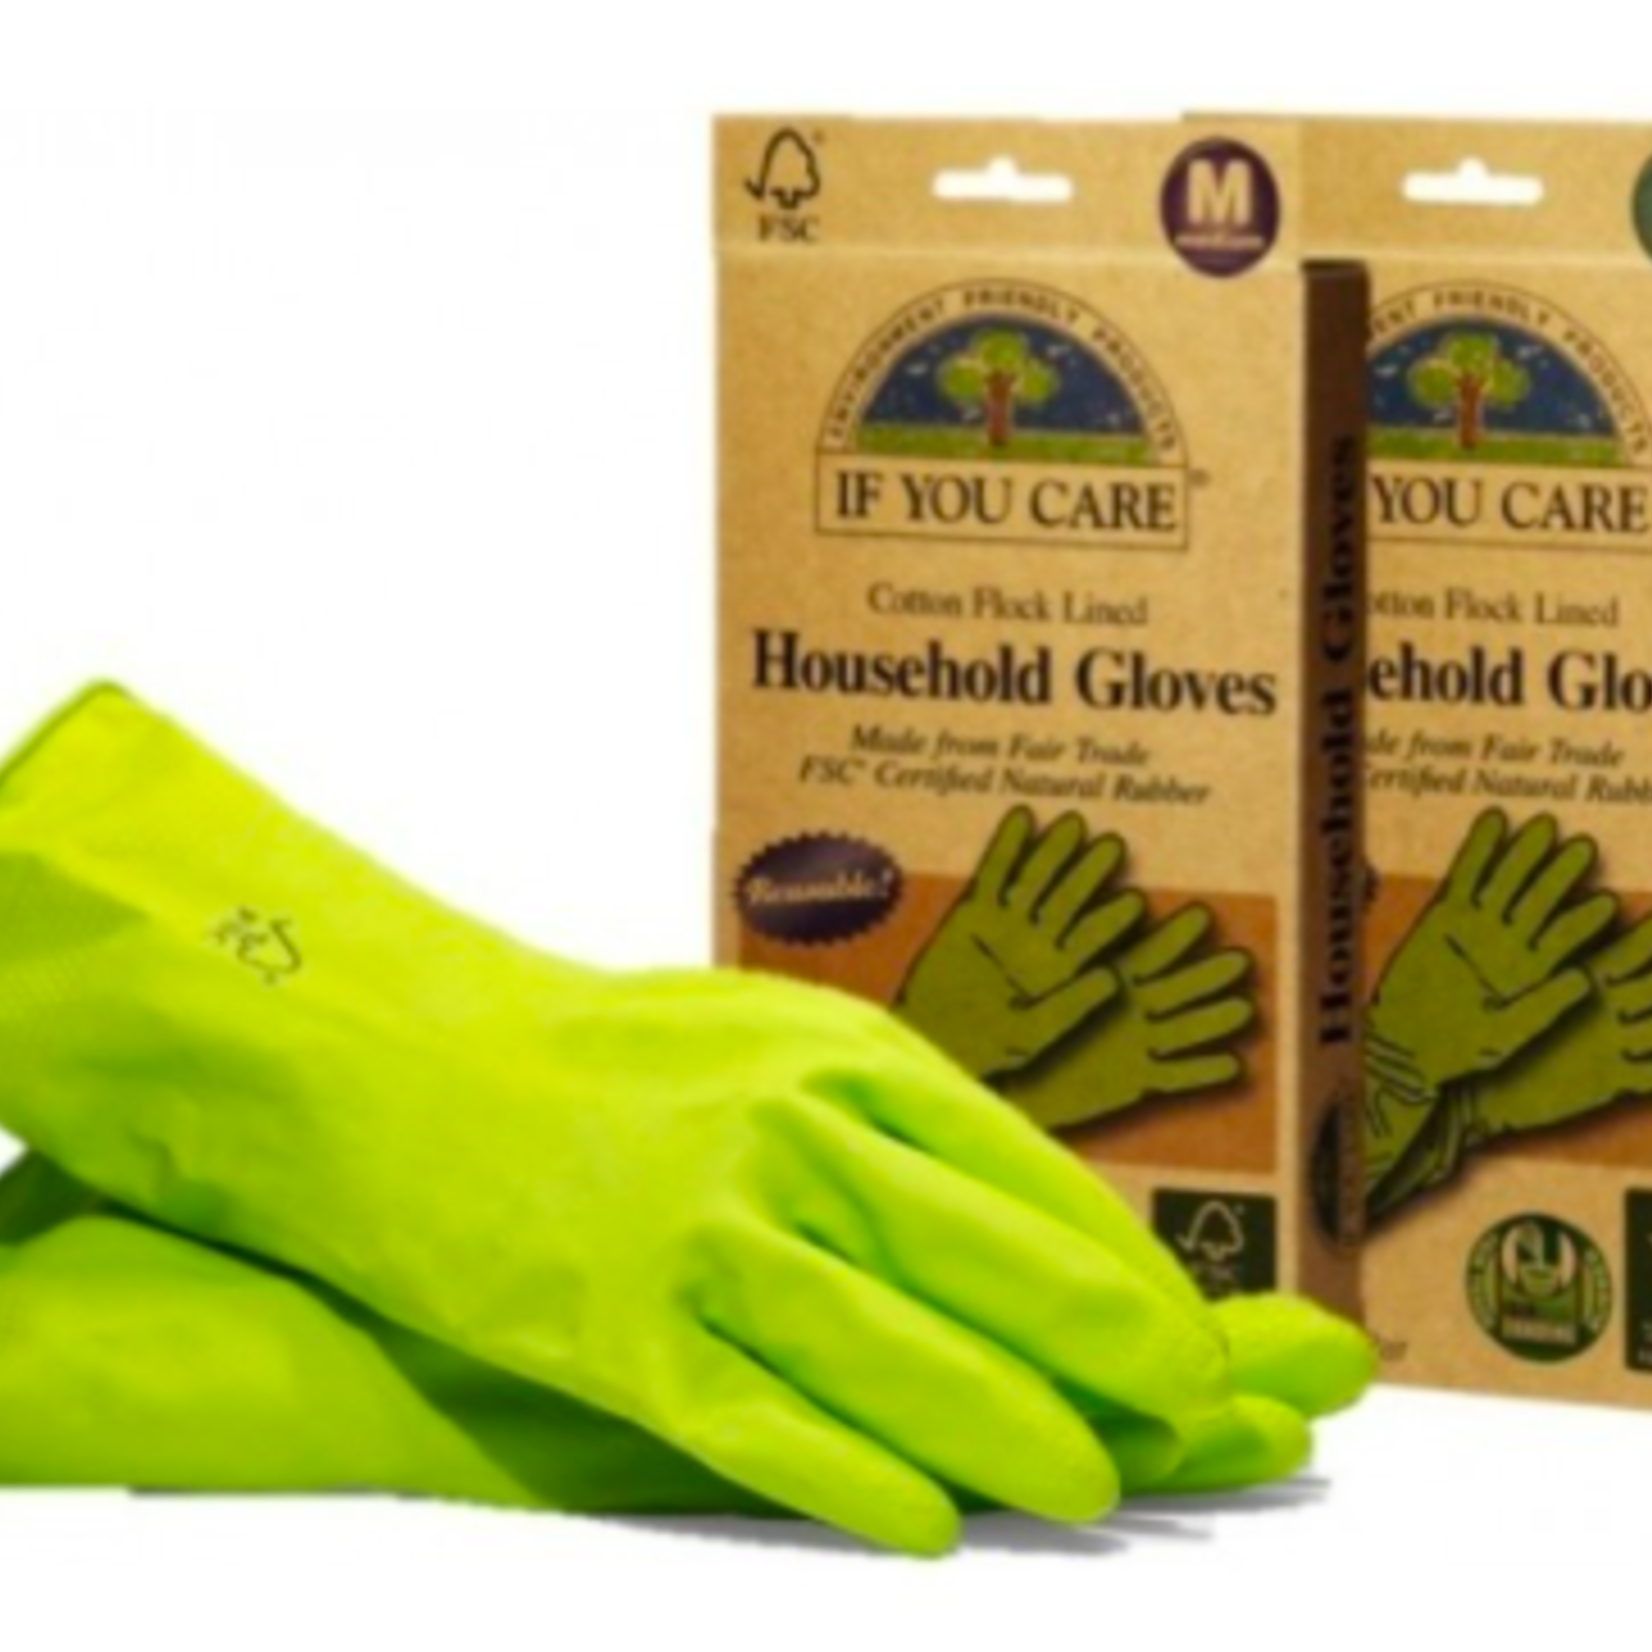 If You Care Latex Gloves